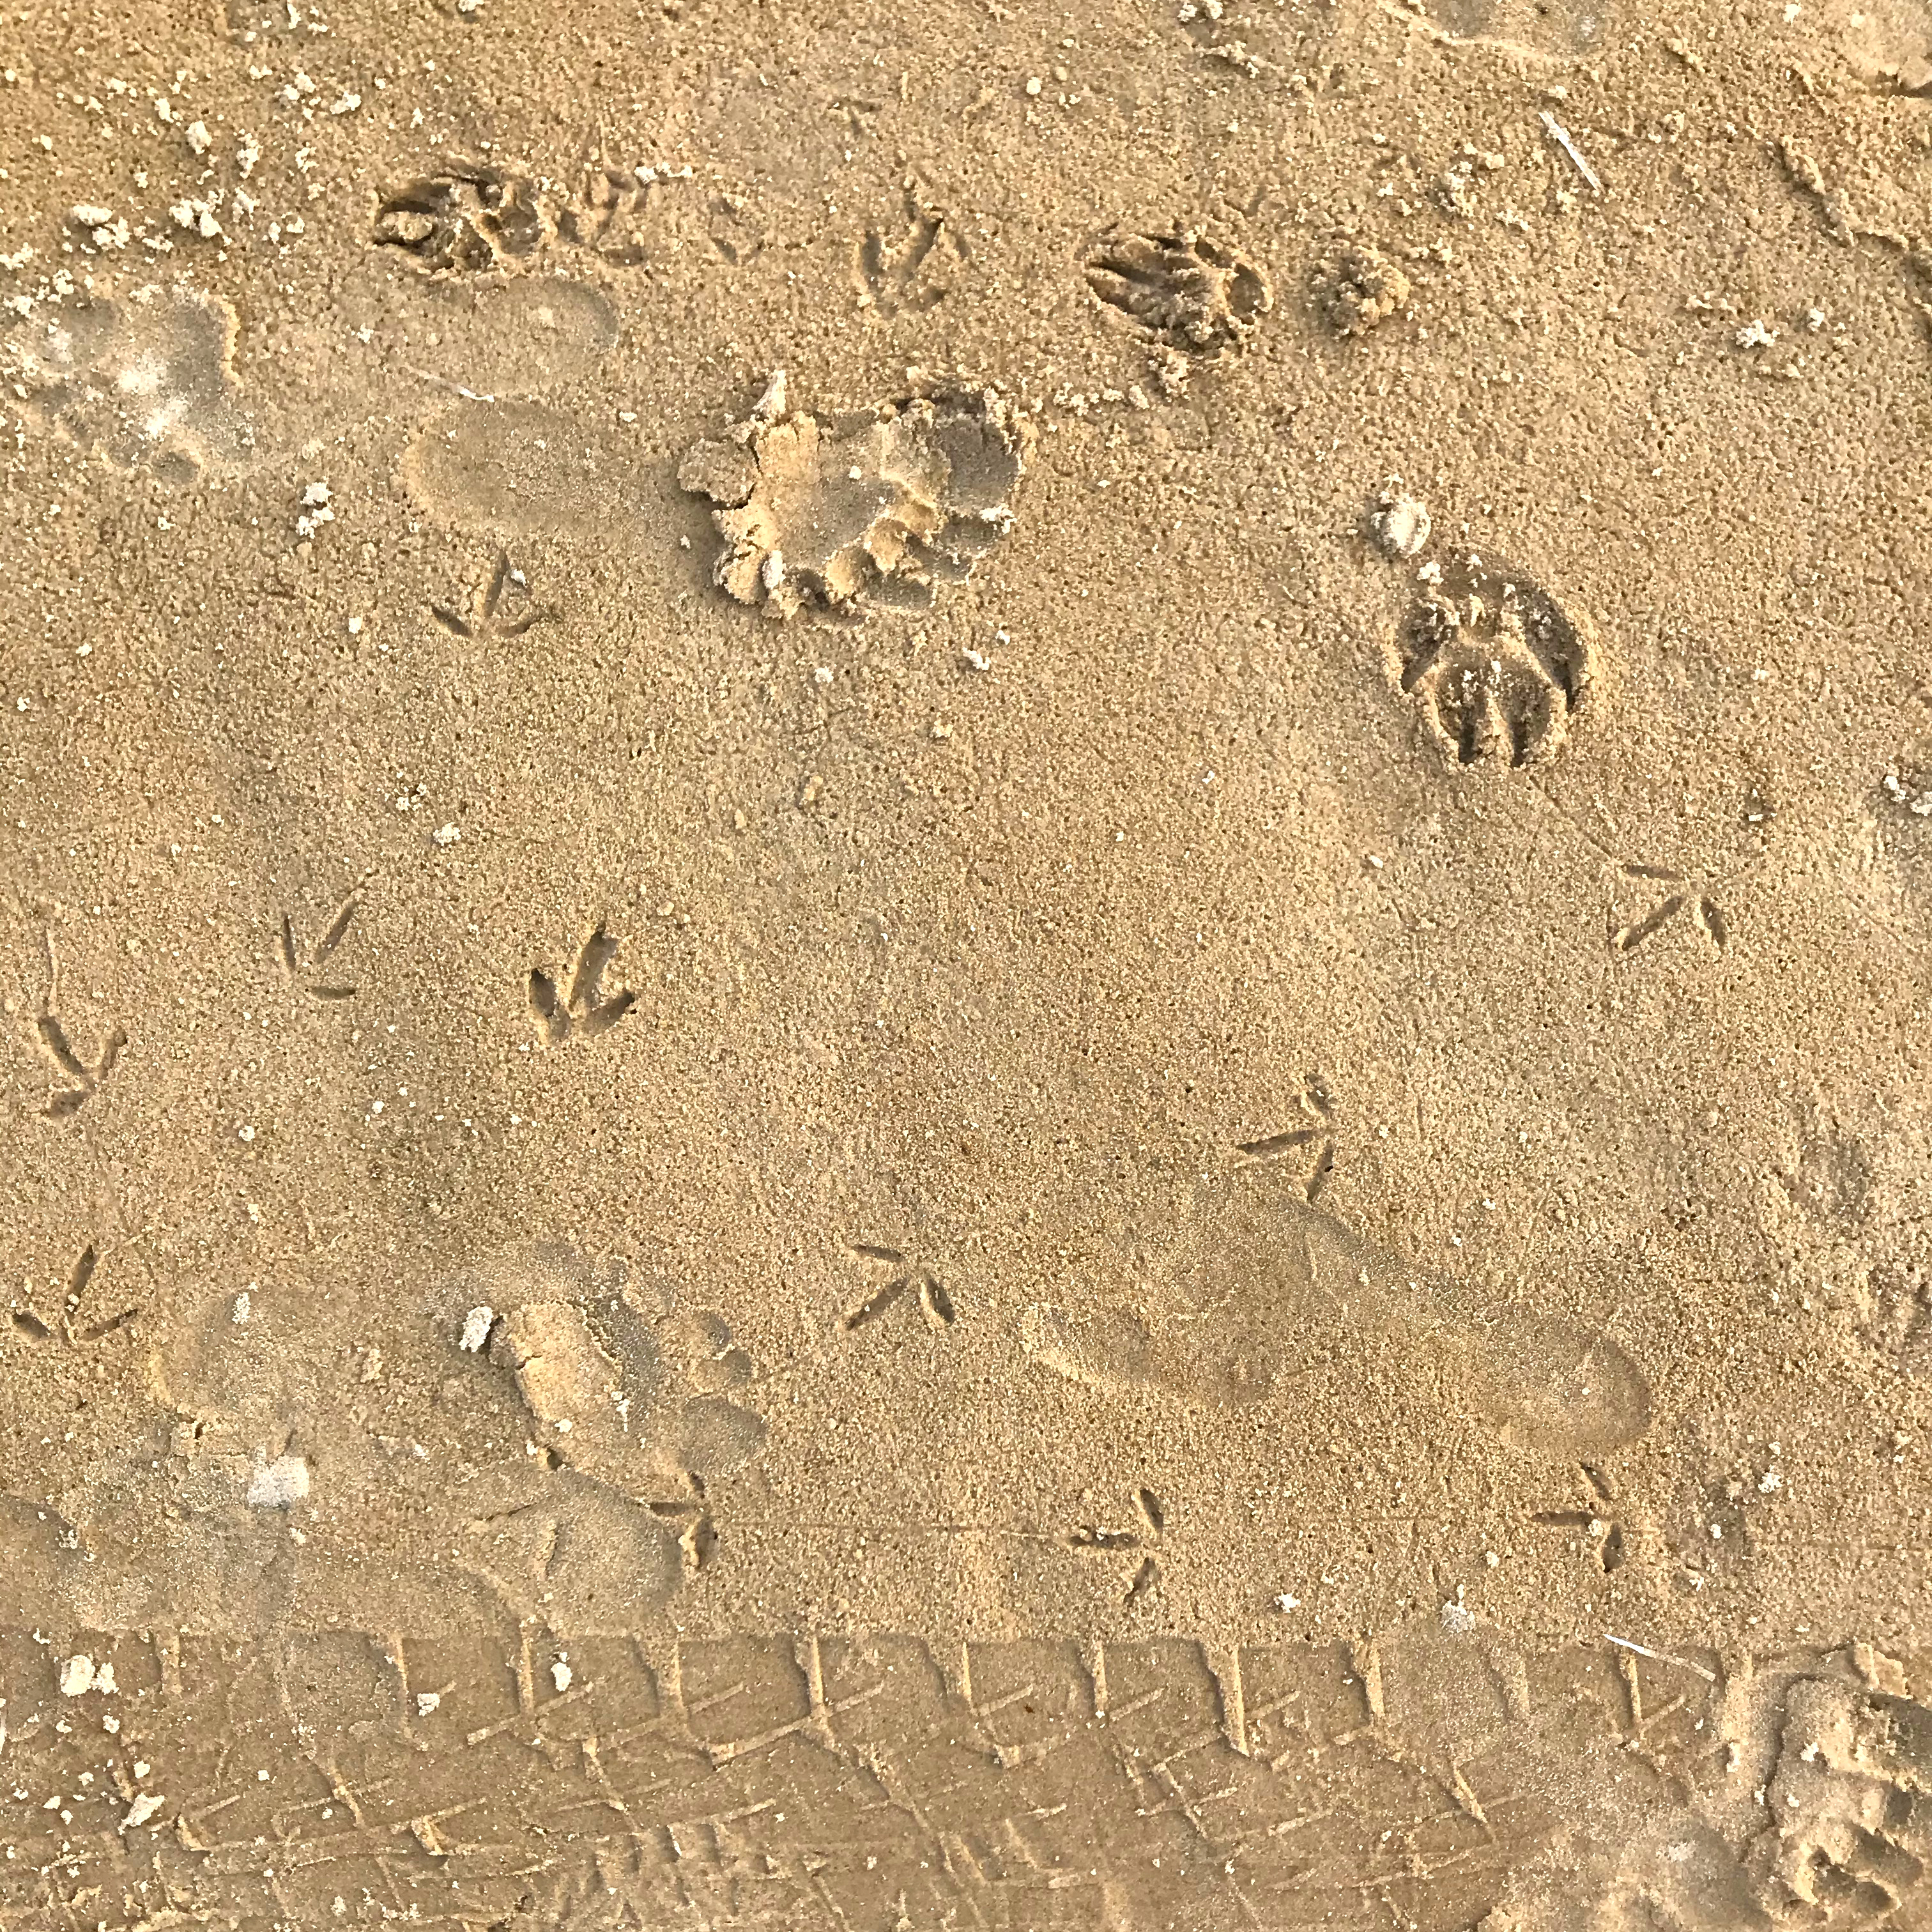 Prints in the sand left by birds, dogs, humans and cars